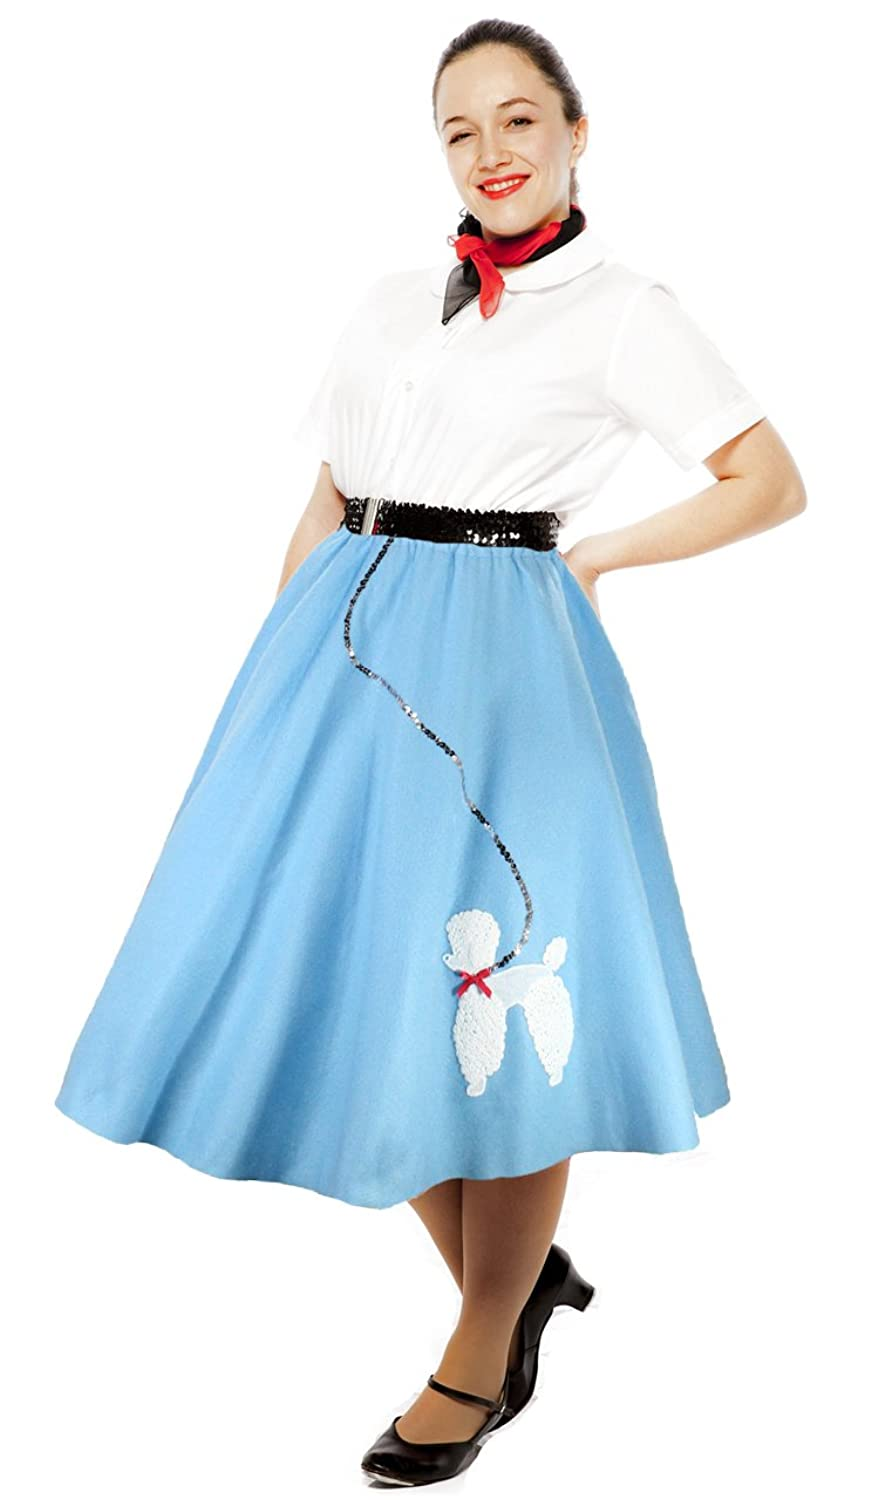 50s Costumes | 50s Halloween Costumes 50s Felt Poodle Skirt in Retro Colors - size Adult Medium / Large by Hey Viv ! $34.50 AT vintagedancer.com